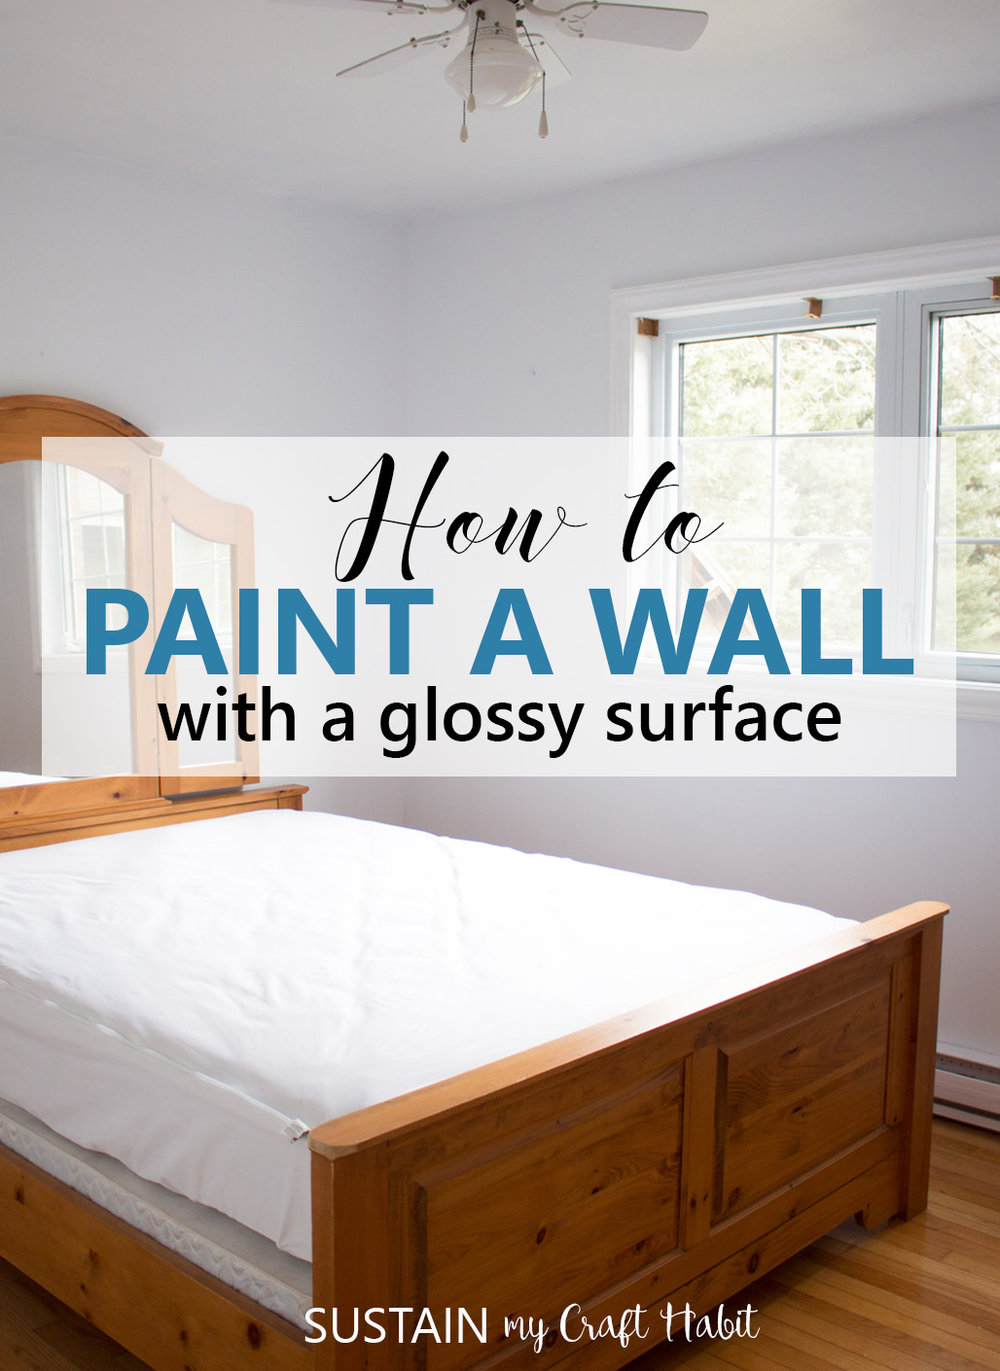 How to paint a wall with a glossy surface